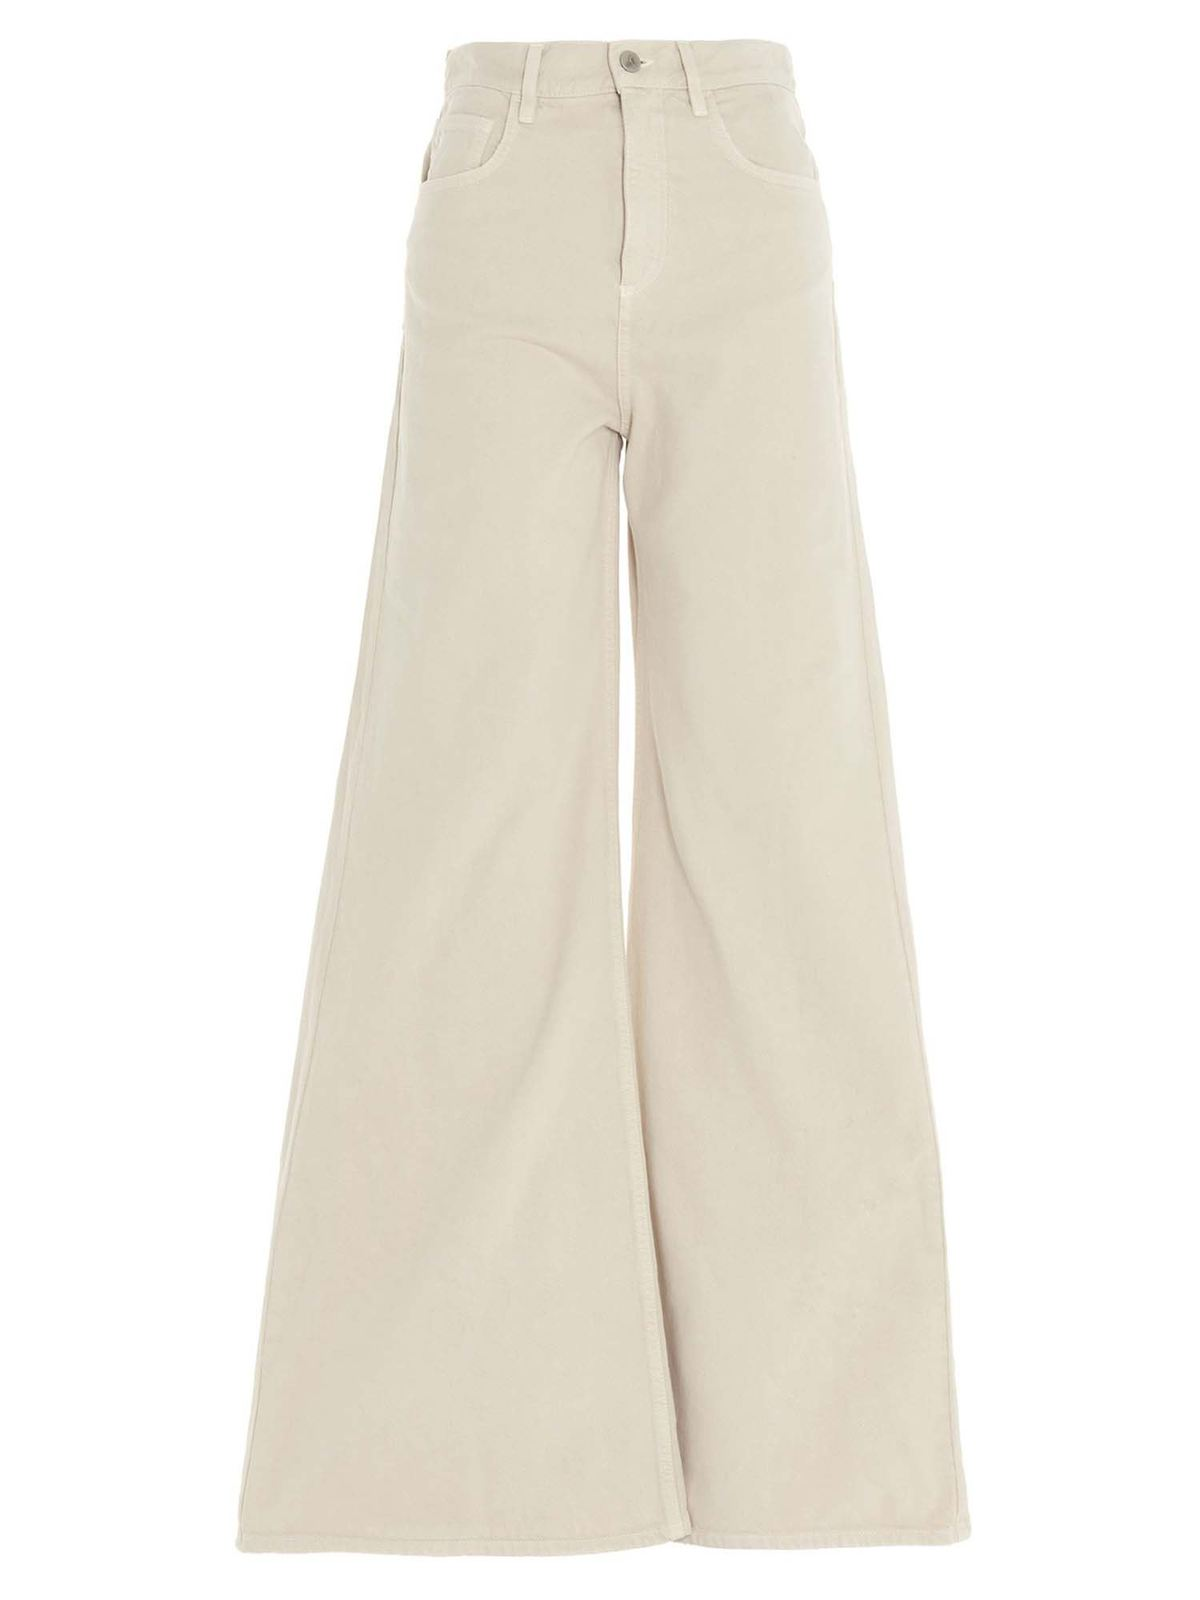 ATTICO FLARED JEANS IN IVORY COLOR